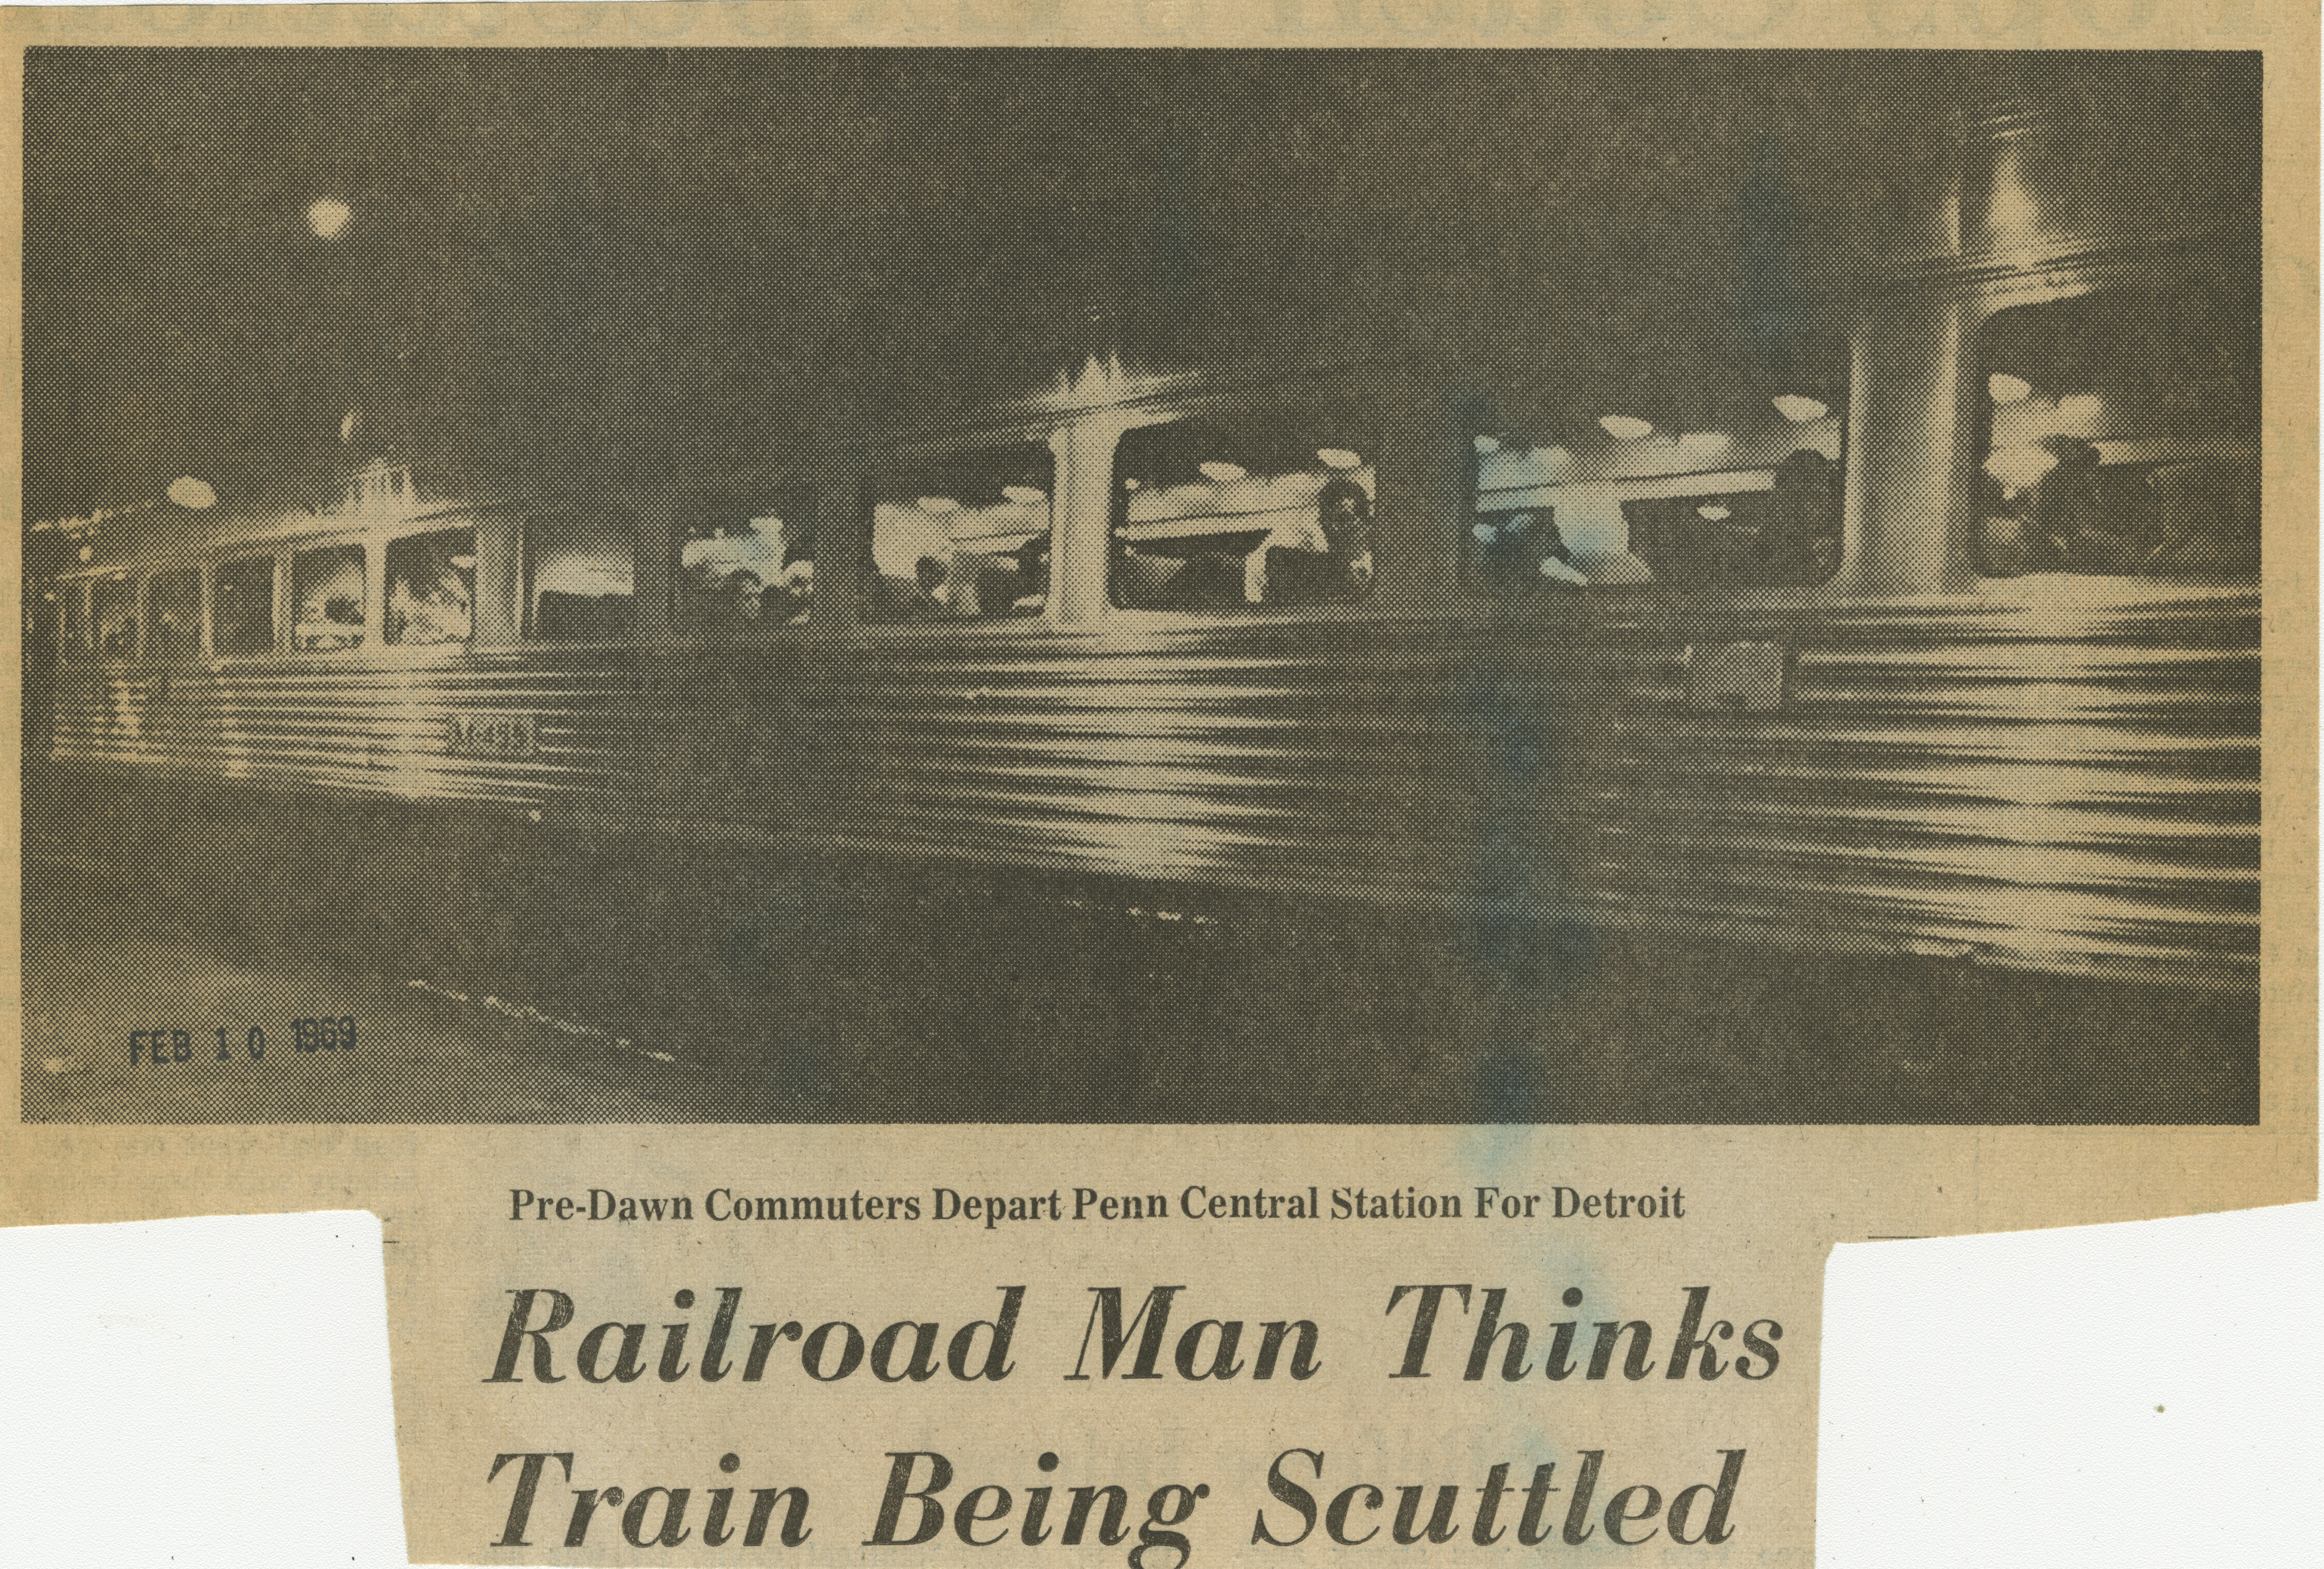 Railroad Man Thinks Train Being Scuttled image